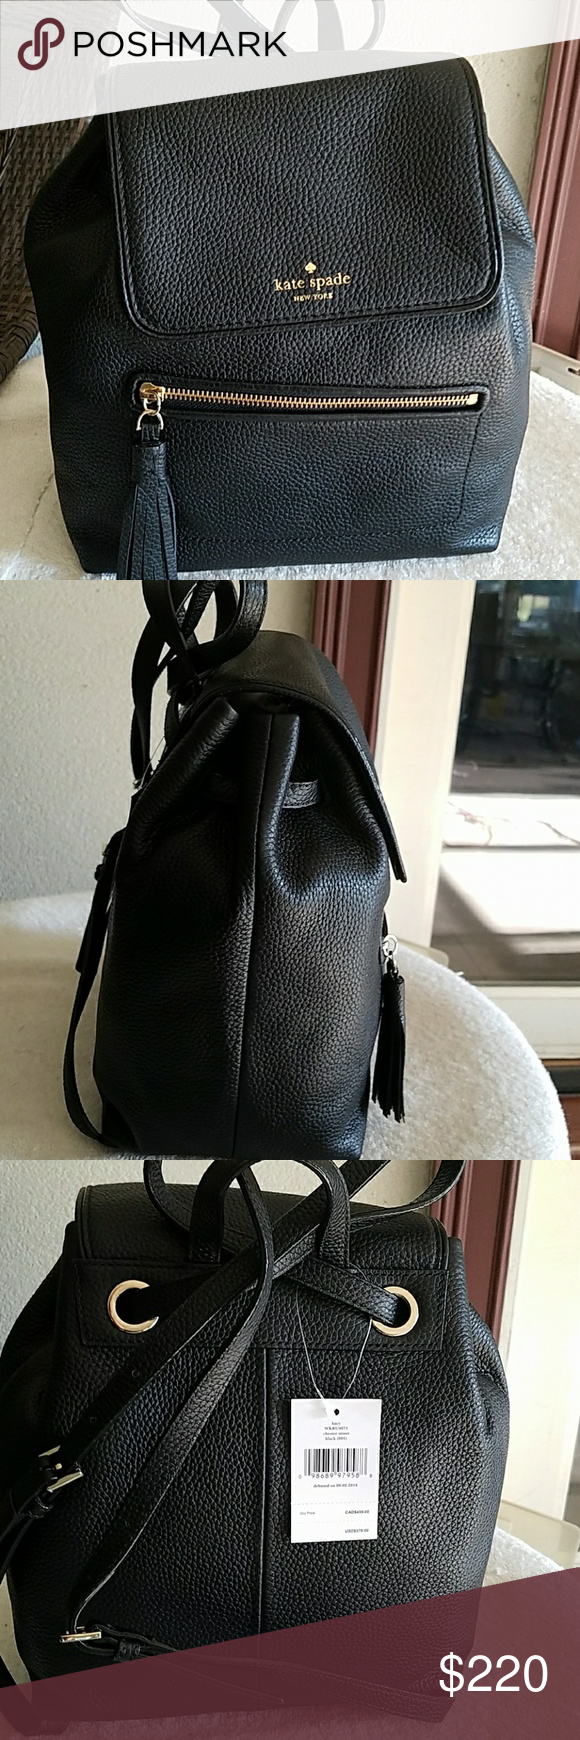 Nwt Kate spade Chester street black backpack purse Nwt Kate spade Chester  street black backpack purse 377bf1c7c7541